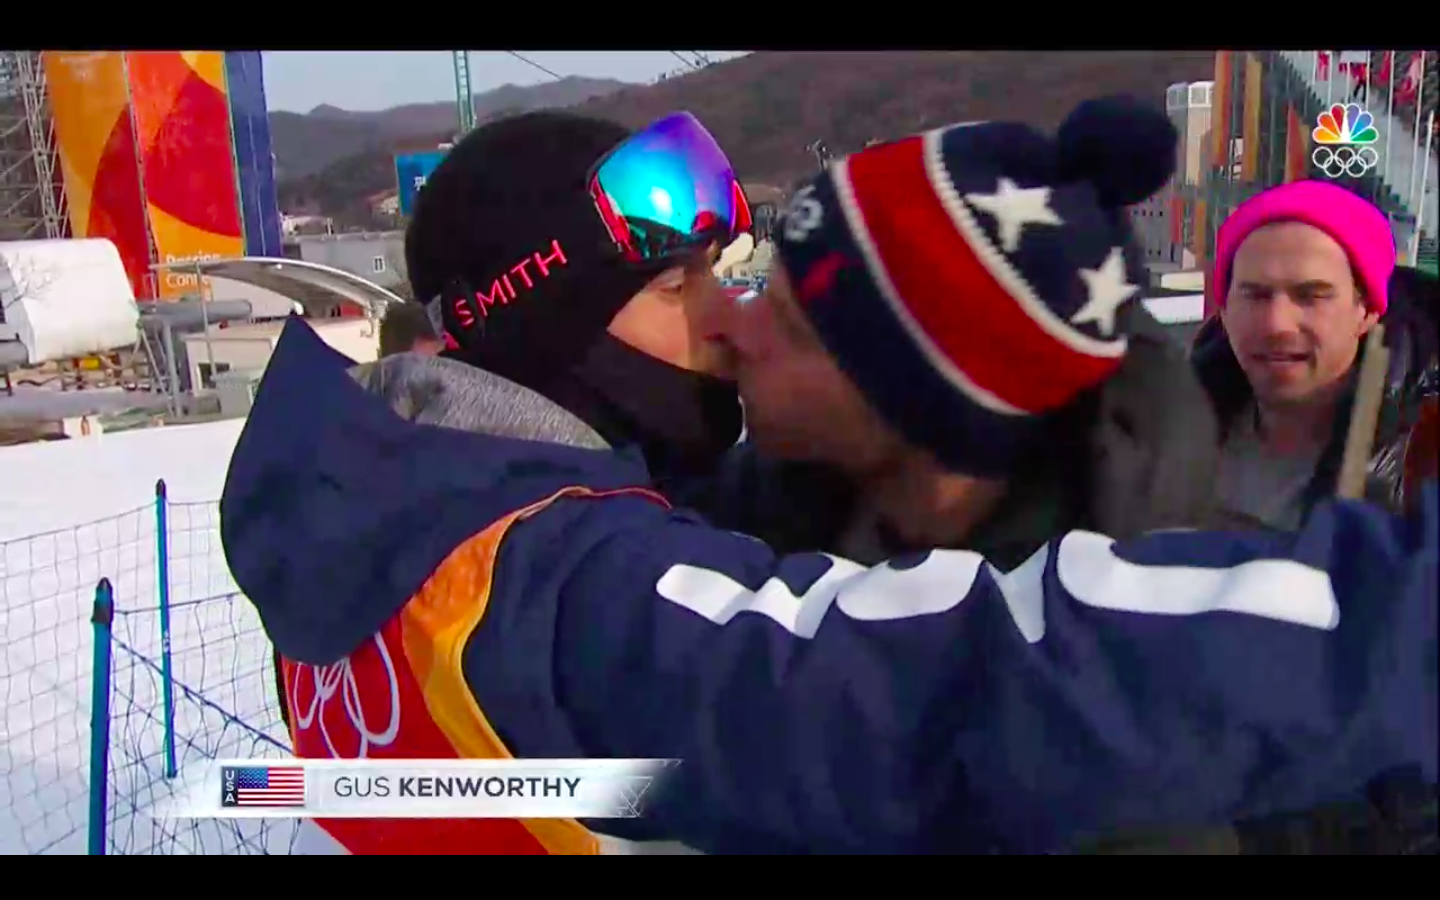 Gus Kenworthy kisses boyfriend Matthew Wilkas before competing in the qualifying round of men's freestyle skiing in Pyeongchang, South Korea, on Feb. 18, 2018.